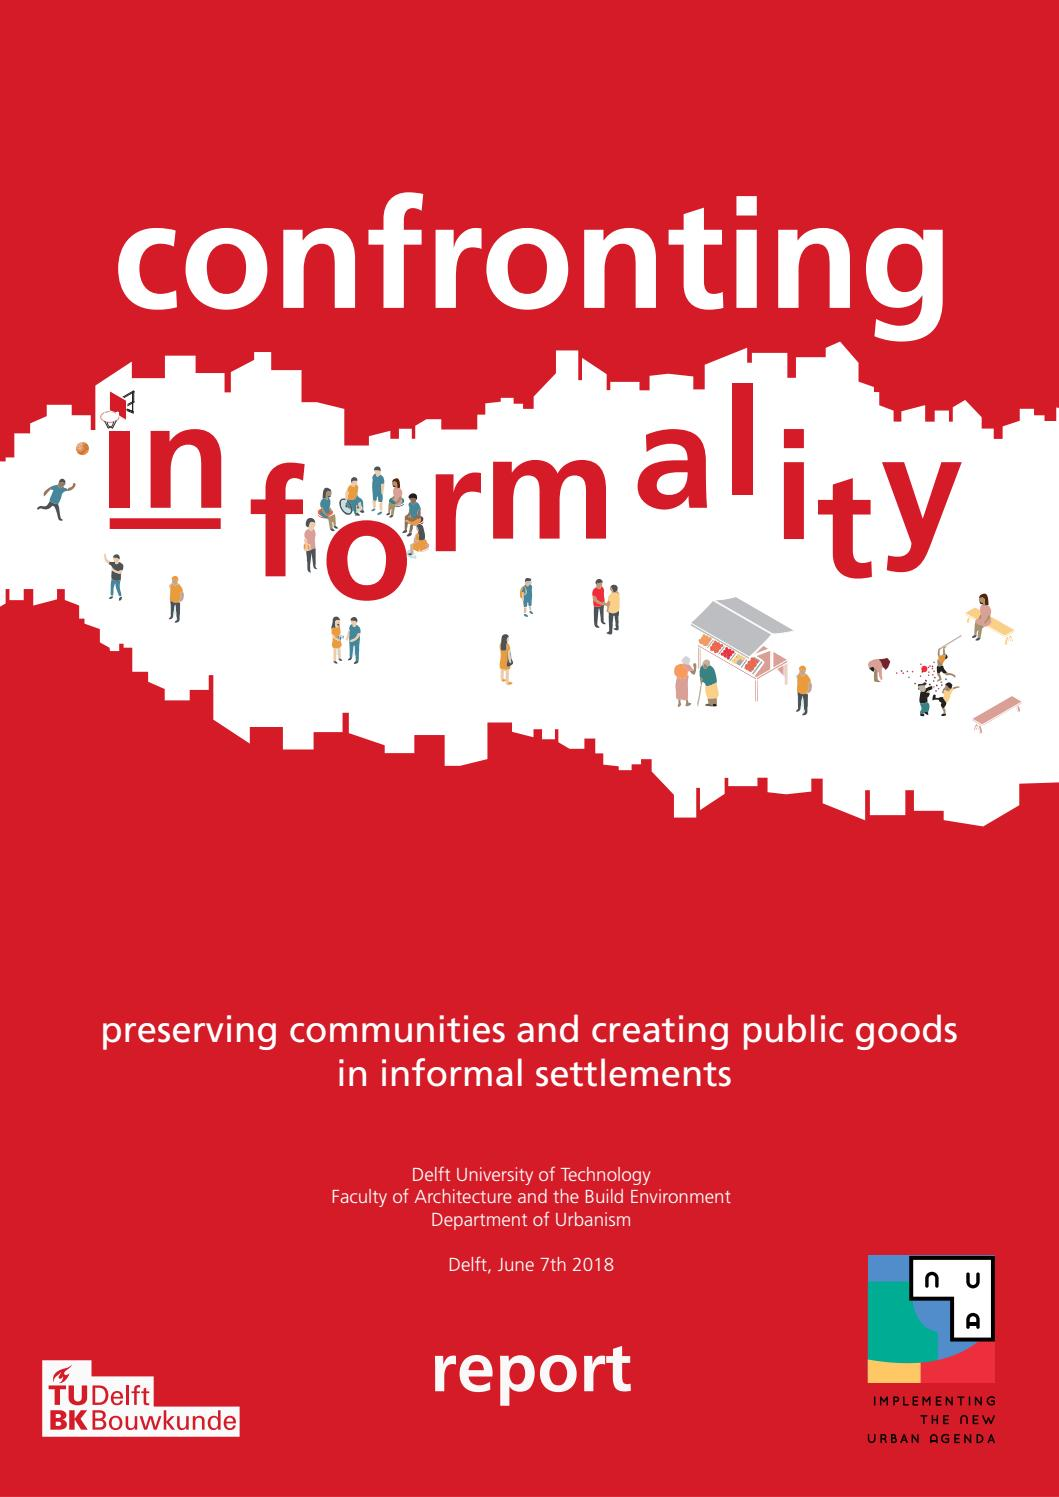 e9d5b4702d1d81 TU DELFT Confronting Informality Symposium and Ideas Competition 2018 by  Roberto Rocco - issuu